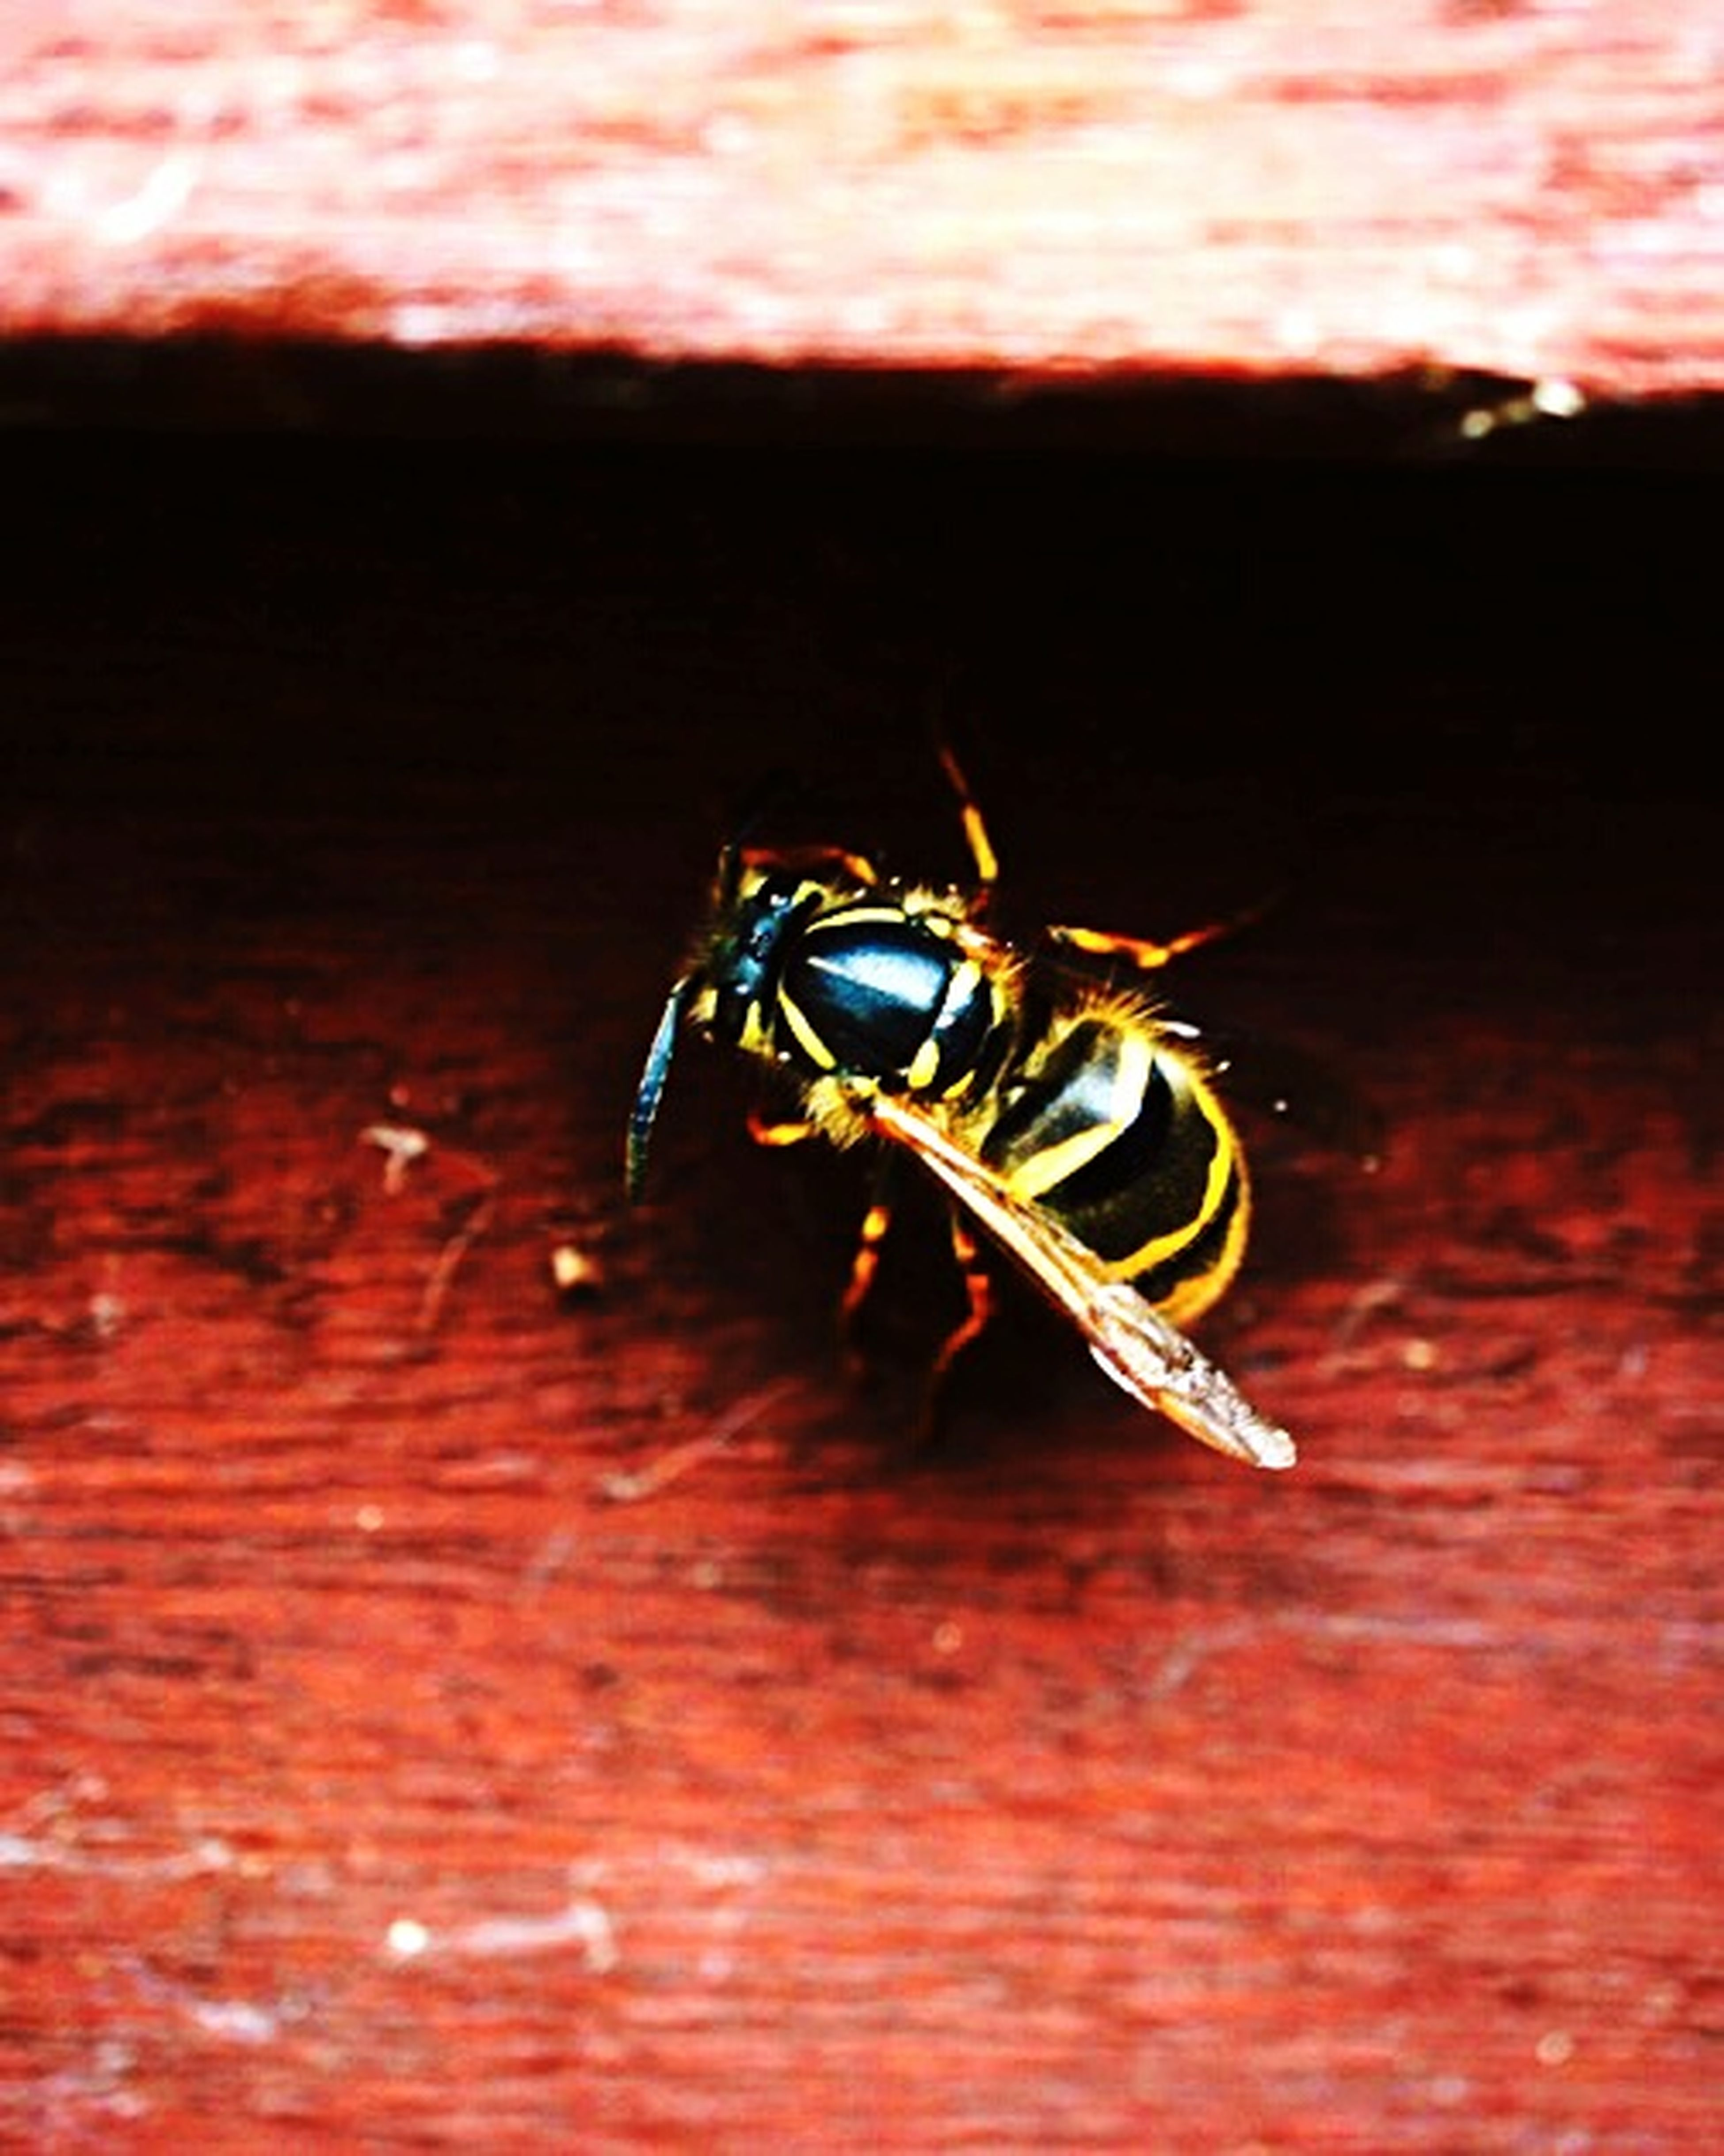 Insect Animal Themes Close-up One Animal No People Outdoors Wasp Close Up Wasp Macro Wasp In Winter